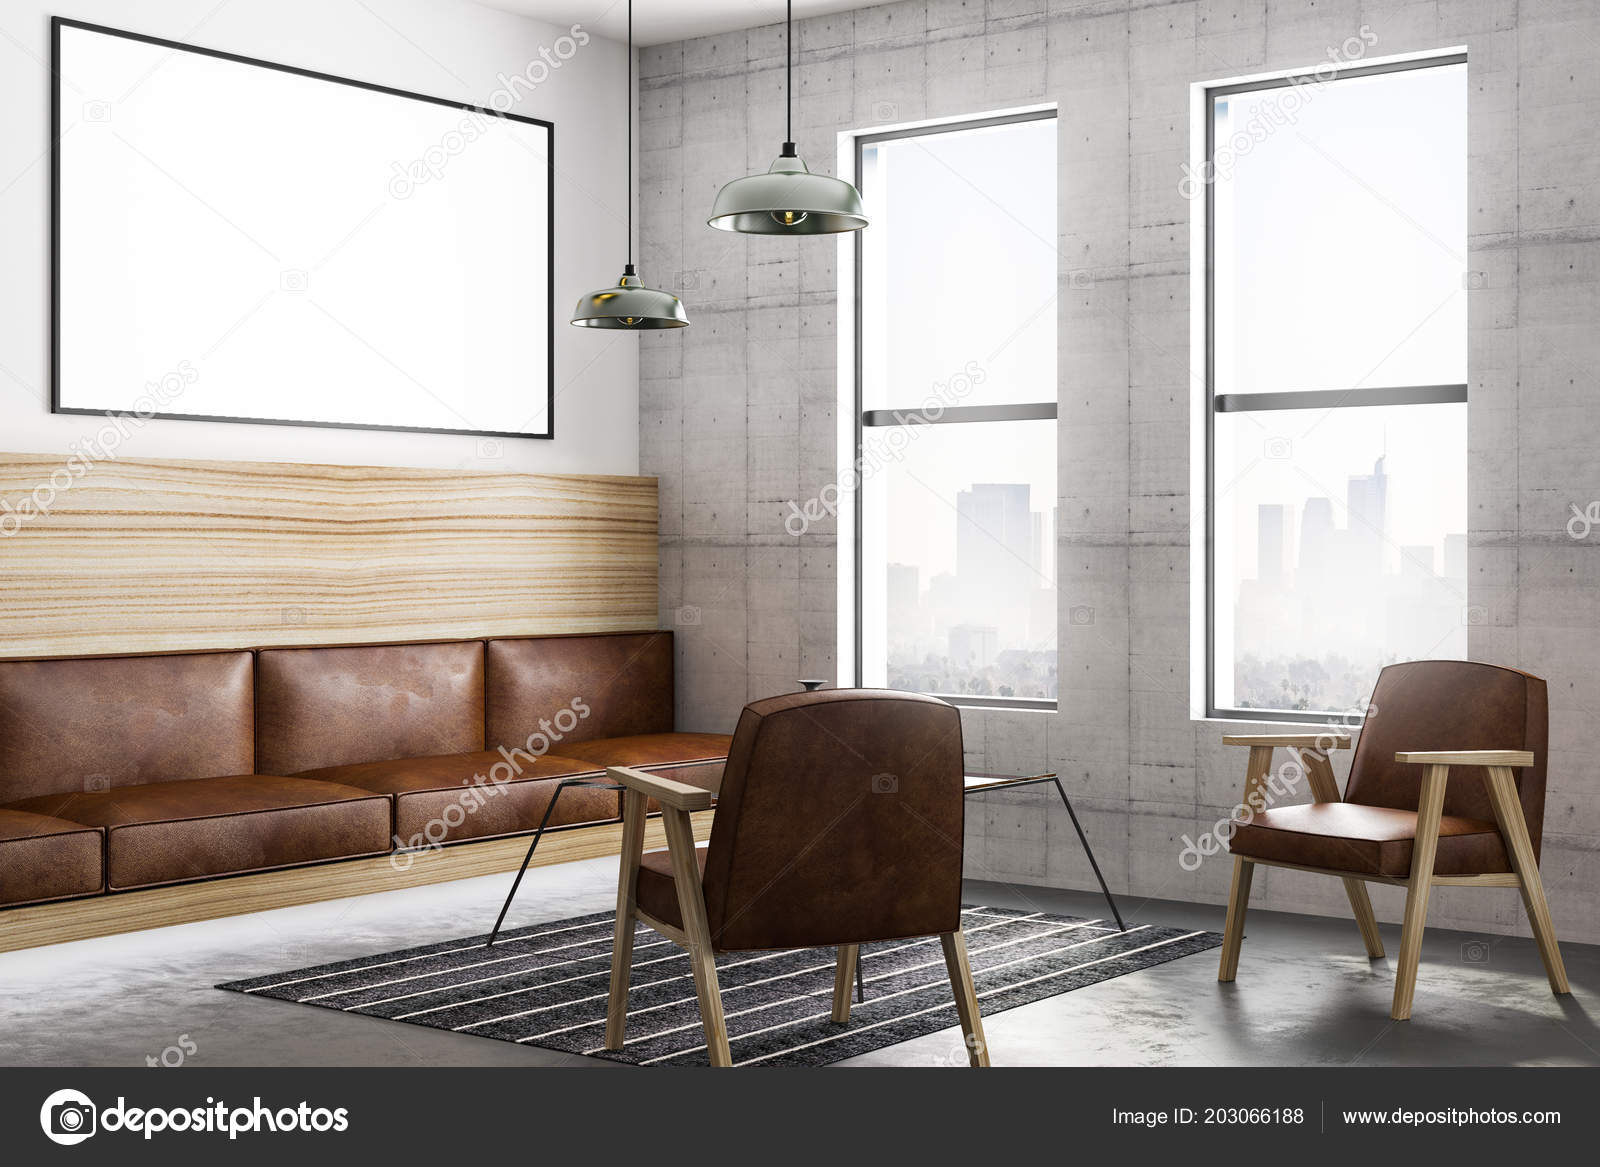 Blank poster on dark wall in modern loft style living room with vintage style leather furniture and city view 3d rendering photo by peshkova